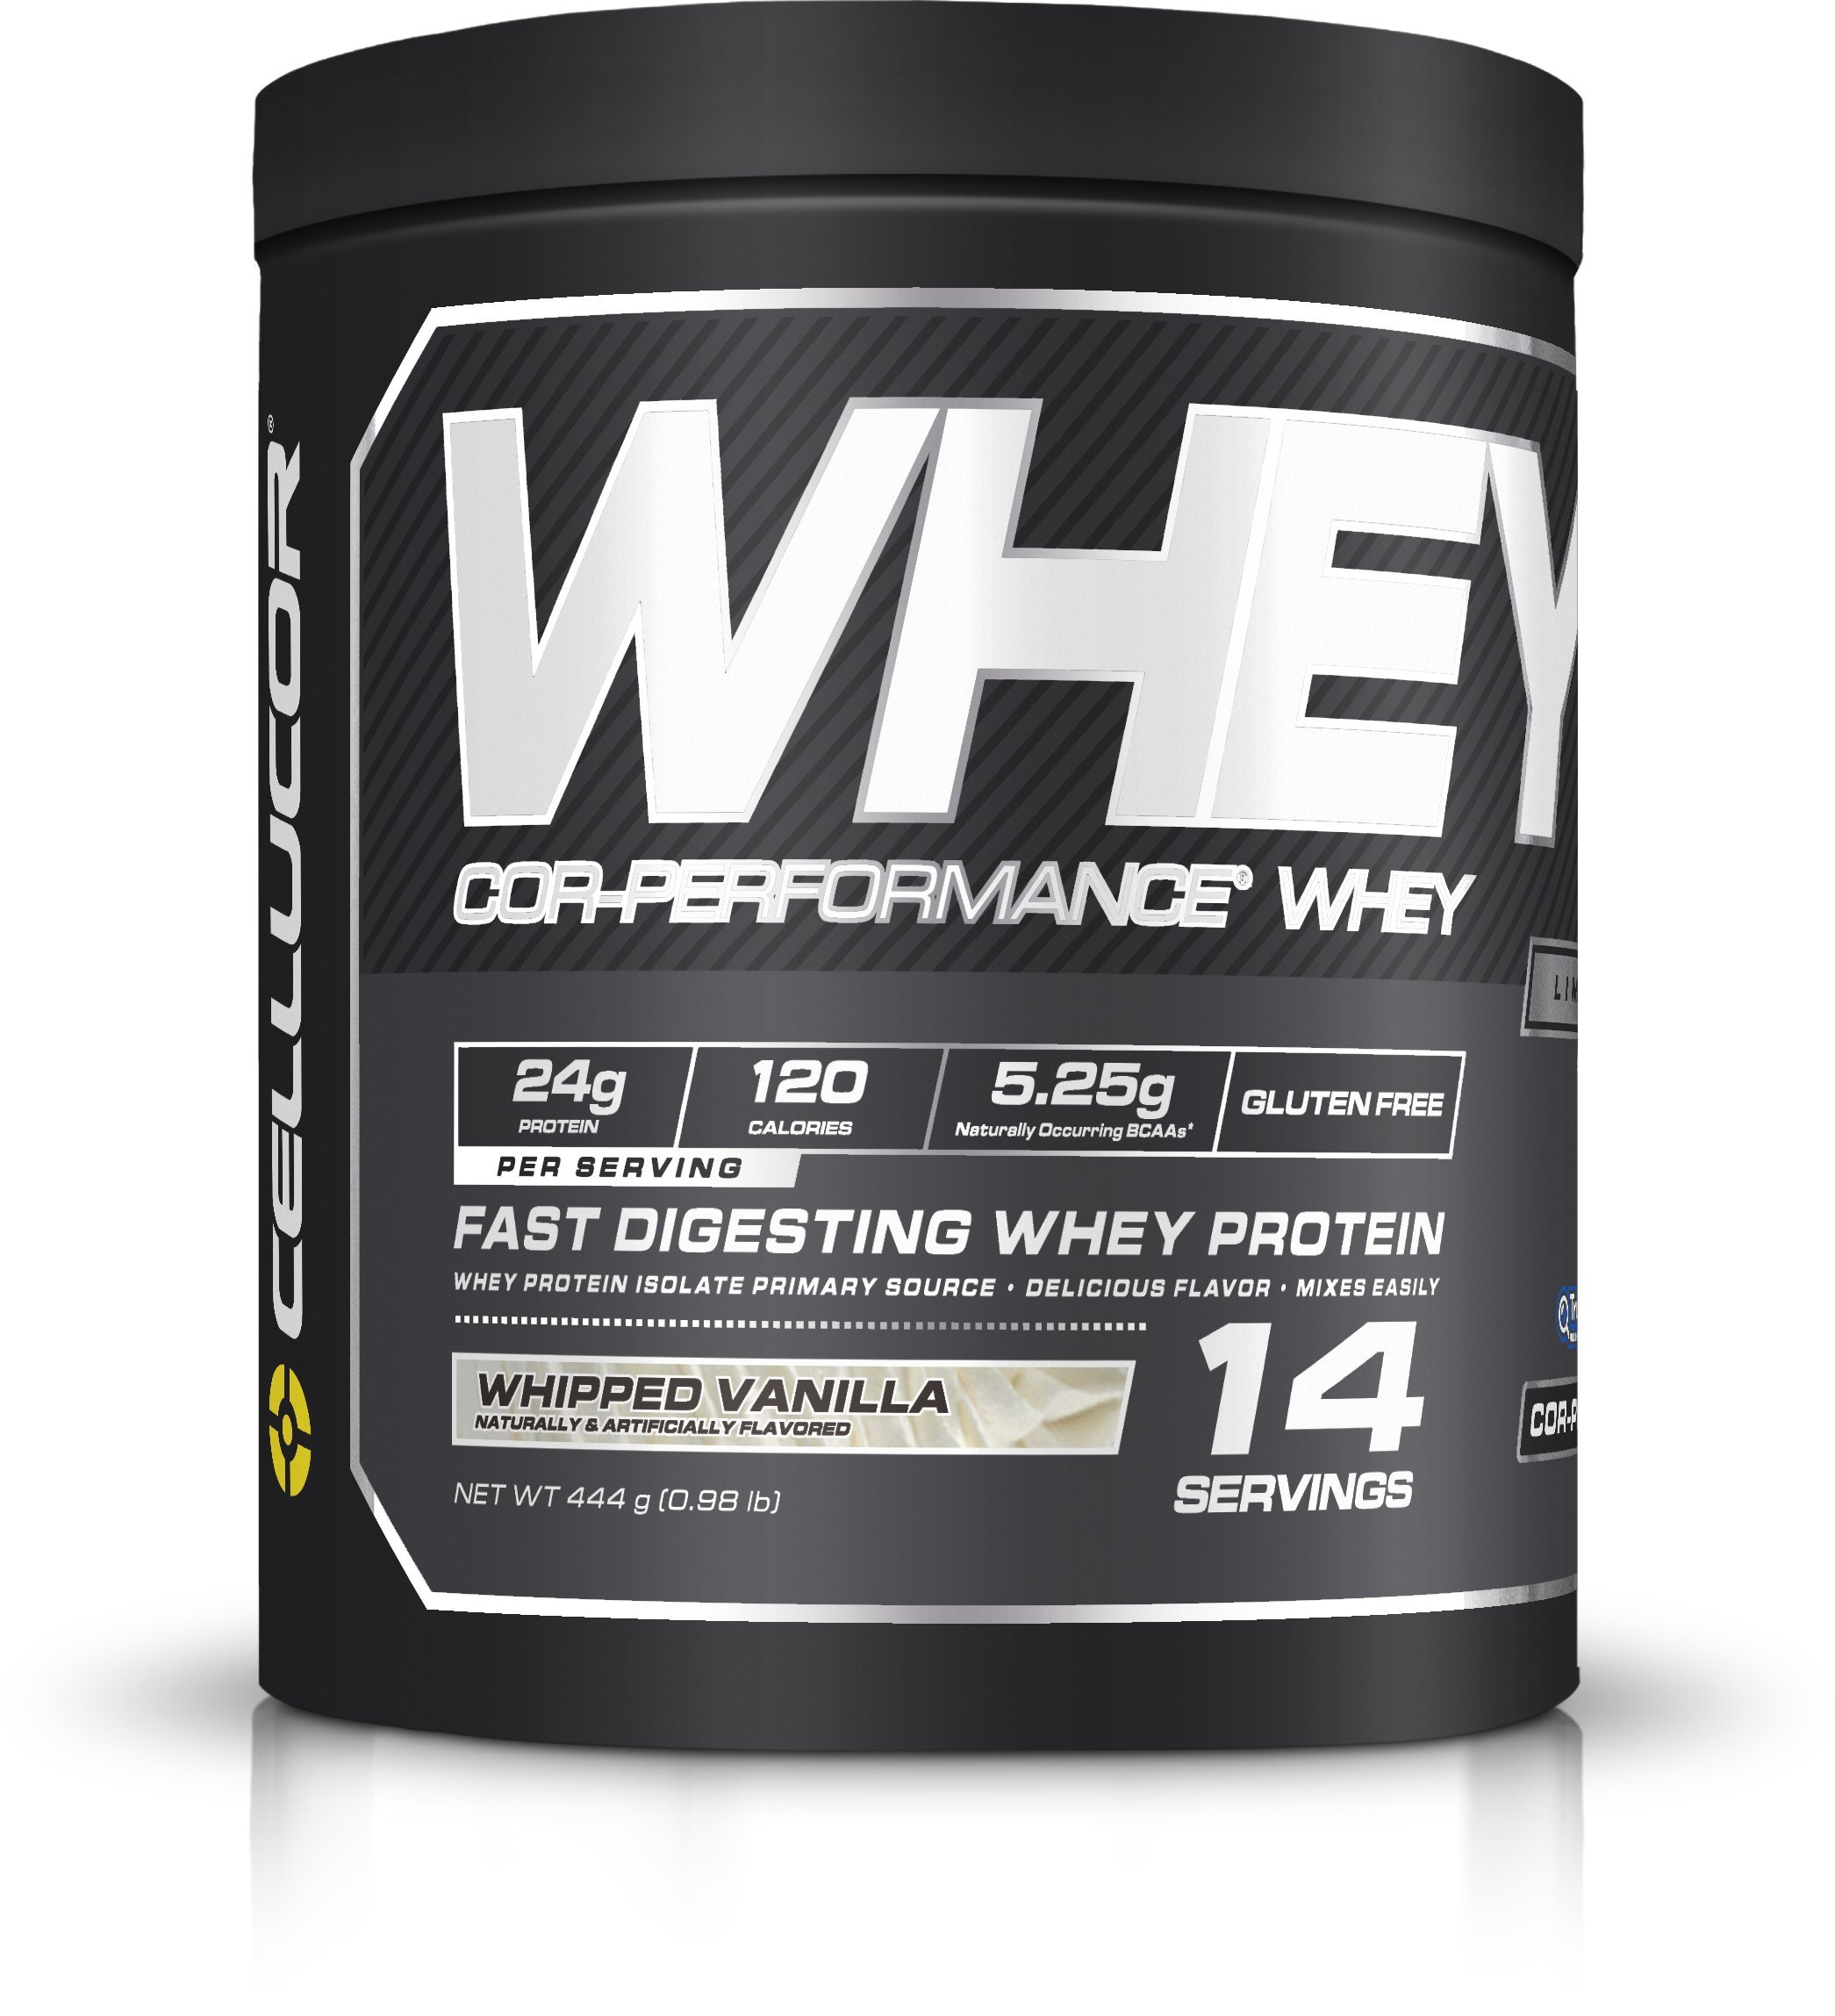 Cellucor COR-Performance Whey Isolate Protein Powder, Post Workout Recovery Drink, Gluten Free Low Carb Low Fat, BCAA, Whipped Vanilla, 14 Servings